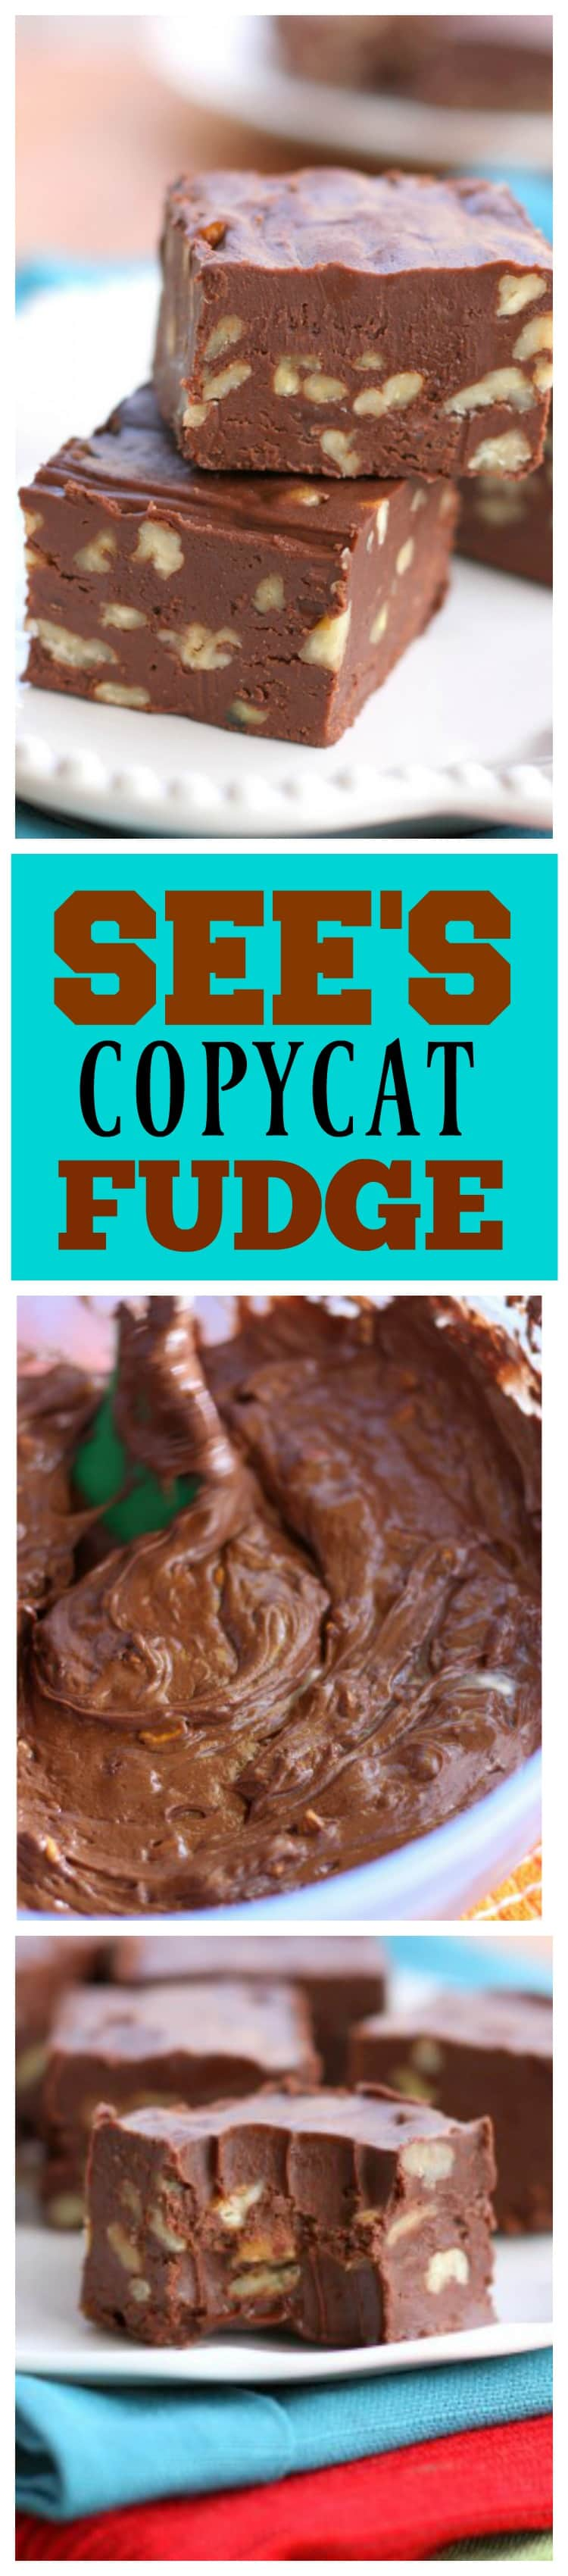 See's Copycat Fudge is perfect and creamy. No candy thermometer required! #sees #copycat #fudge #dessert #chocolate